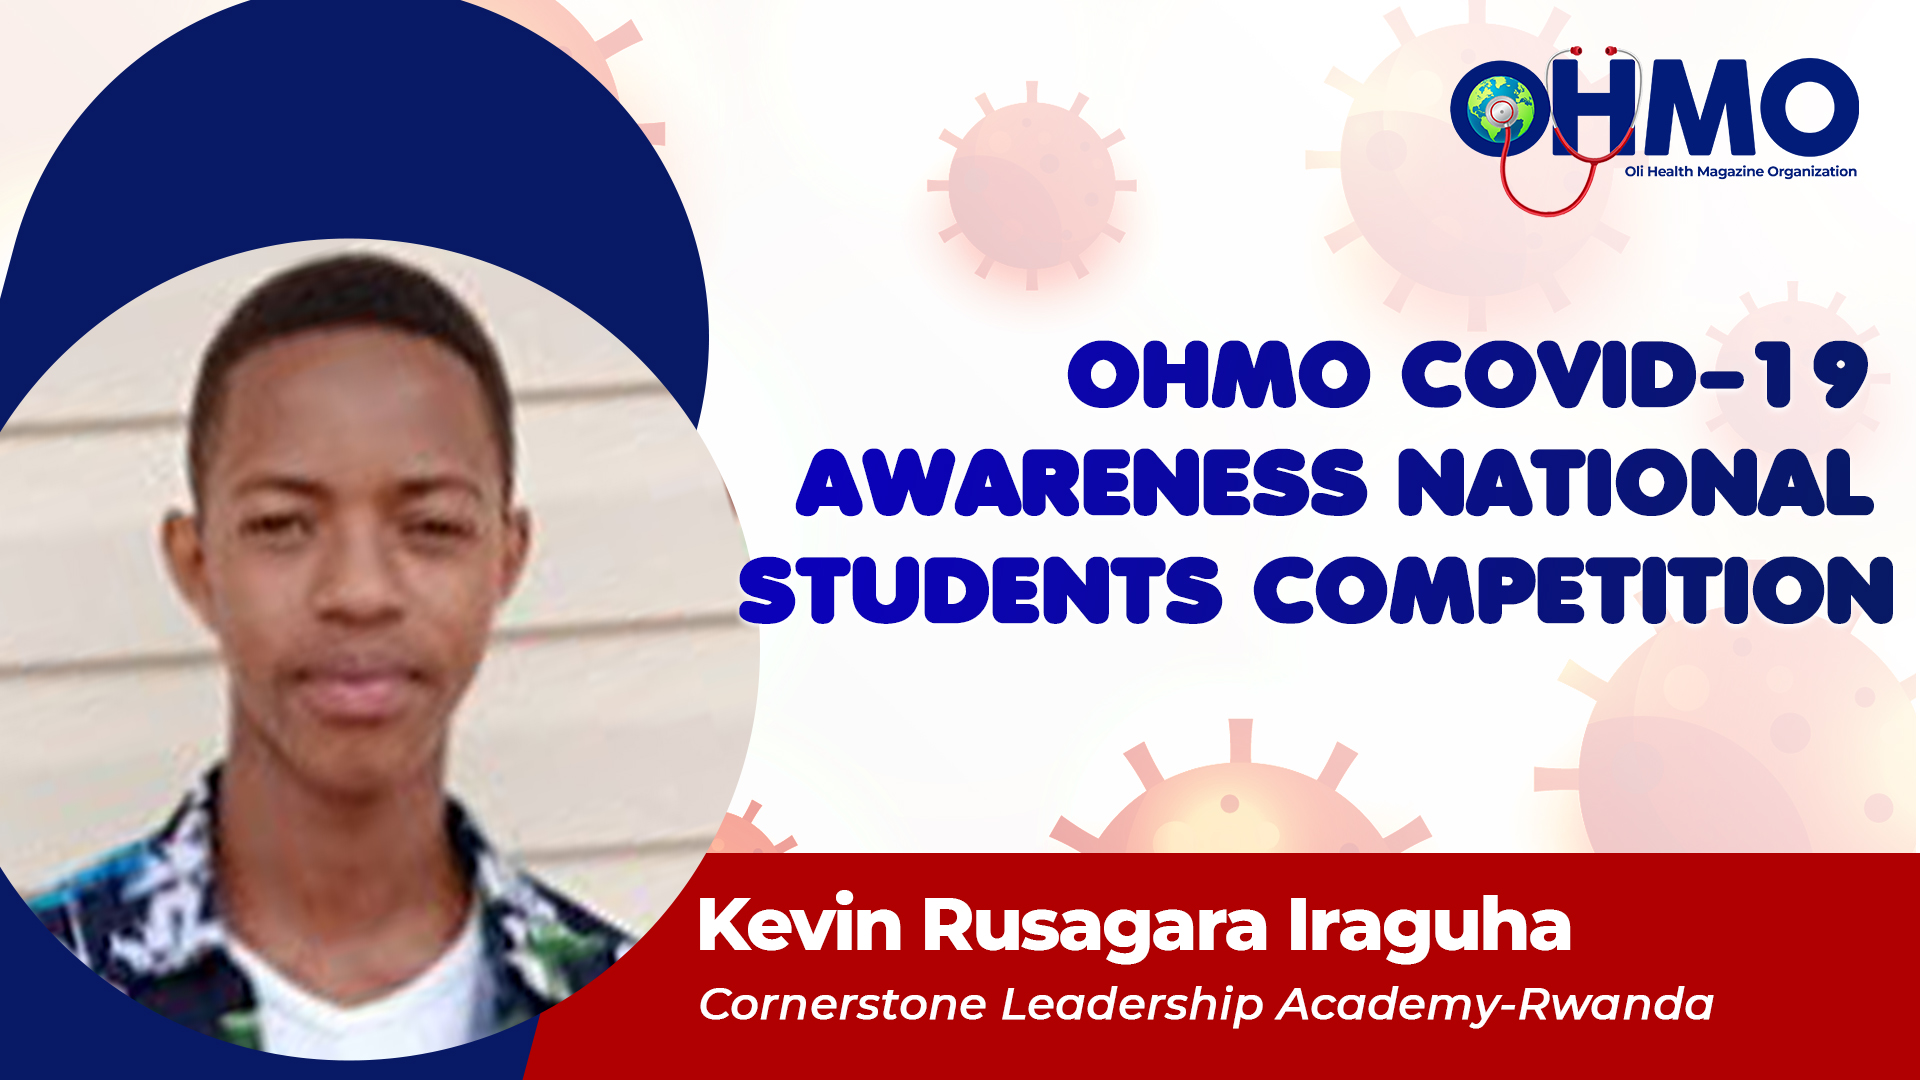 Coronavirus: Tipping Point Of The 21st Century - Kevin Rusagara Iraguha from Cornerstone Leadership Academy (ENTRY 11)